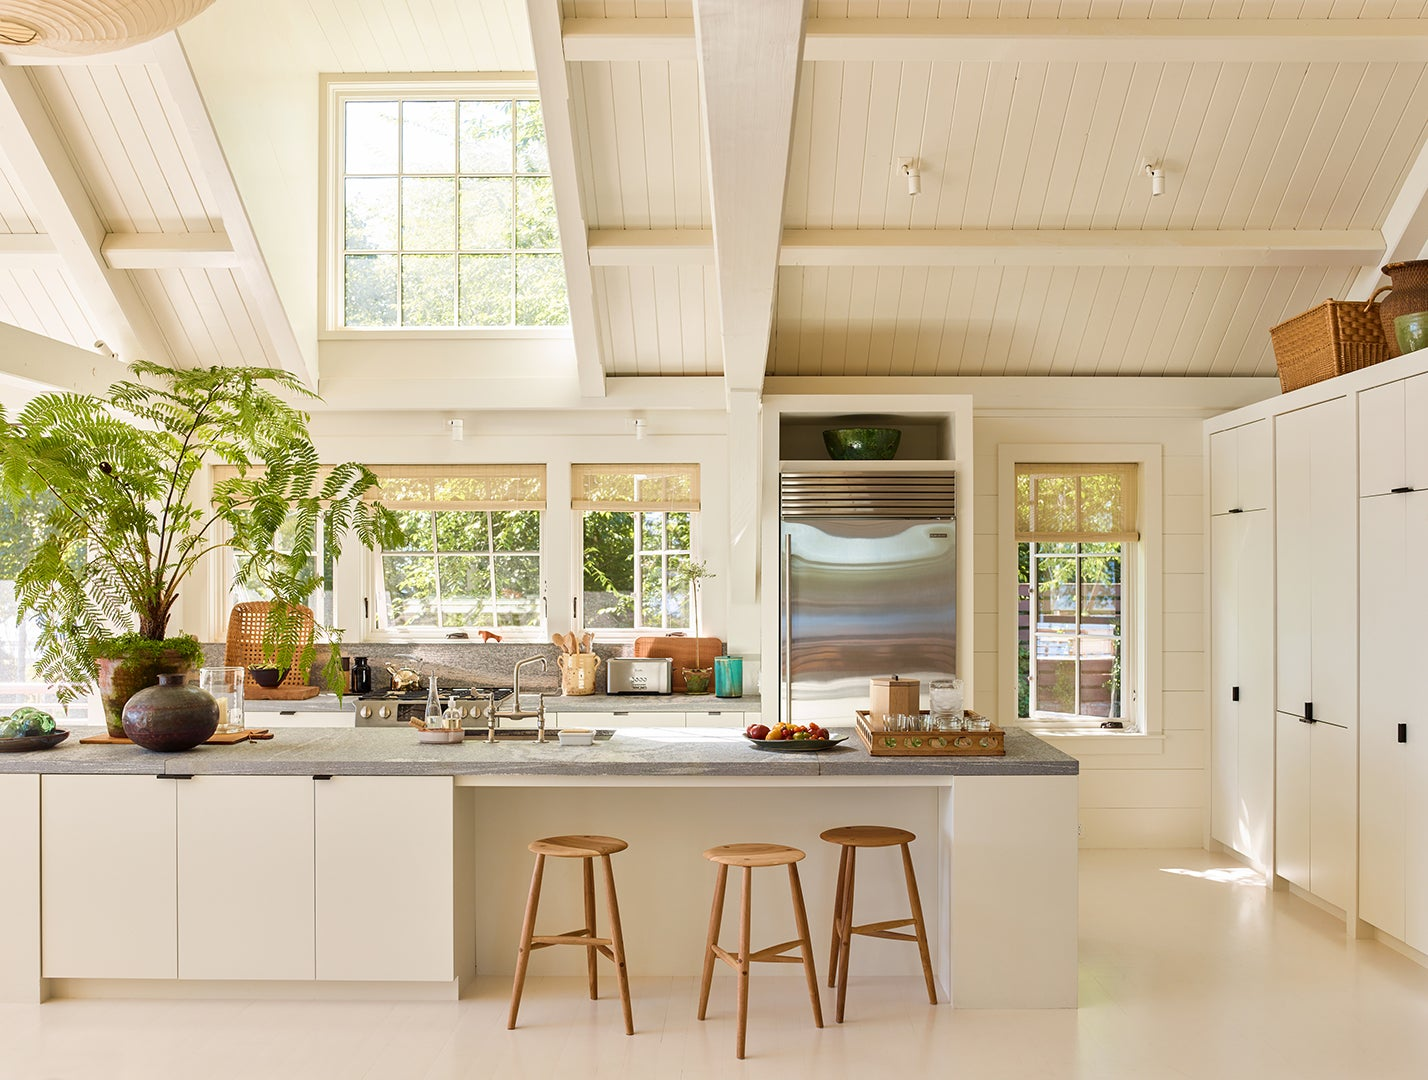 Large off-white kitchen with vaulted ceiling